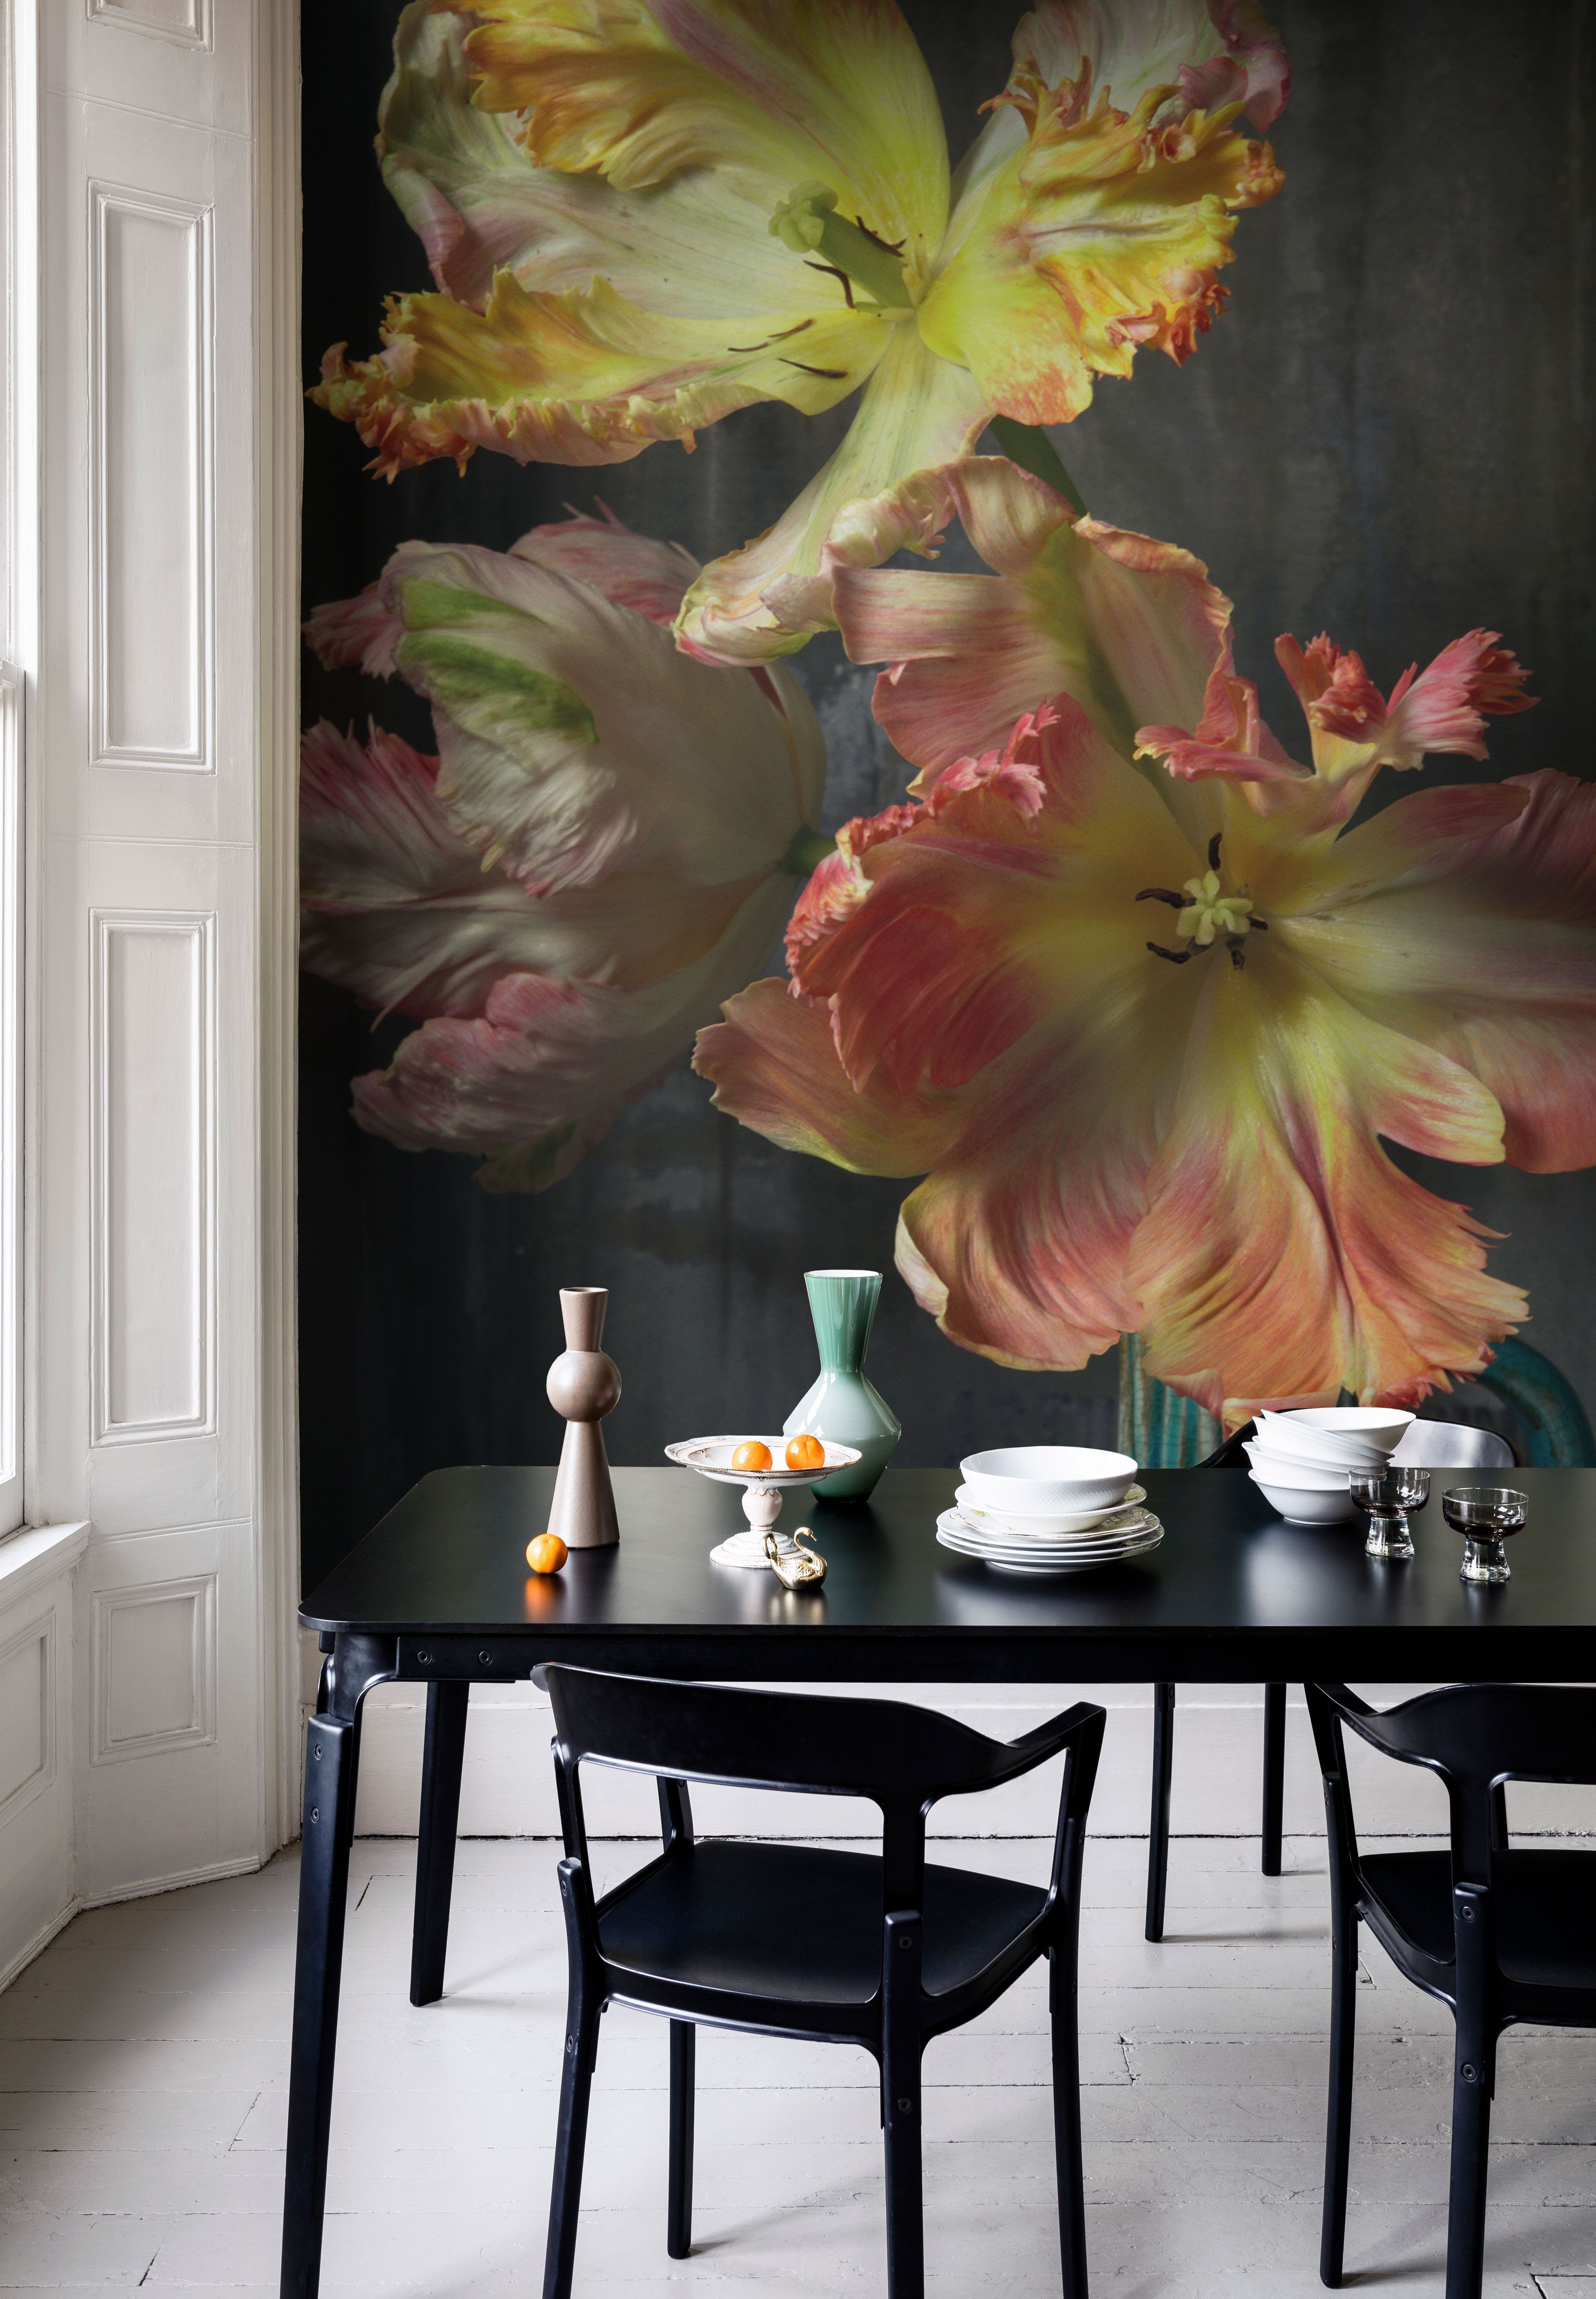 Wall Mural Ideas for Bedroom Elegant Bursting Flower Still Mural Trunk Archive Collection From